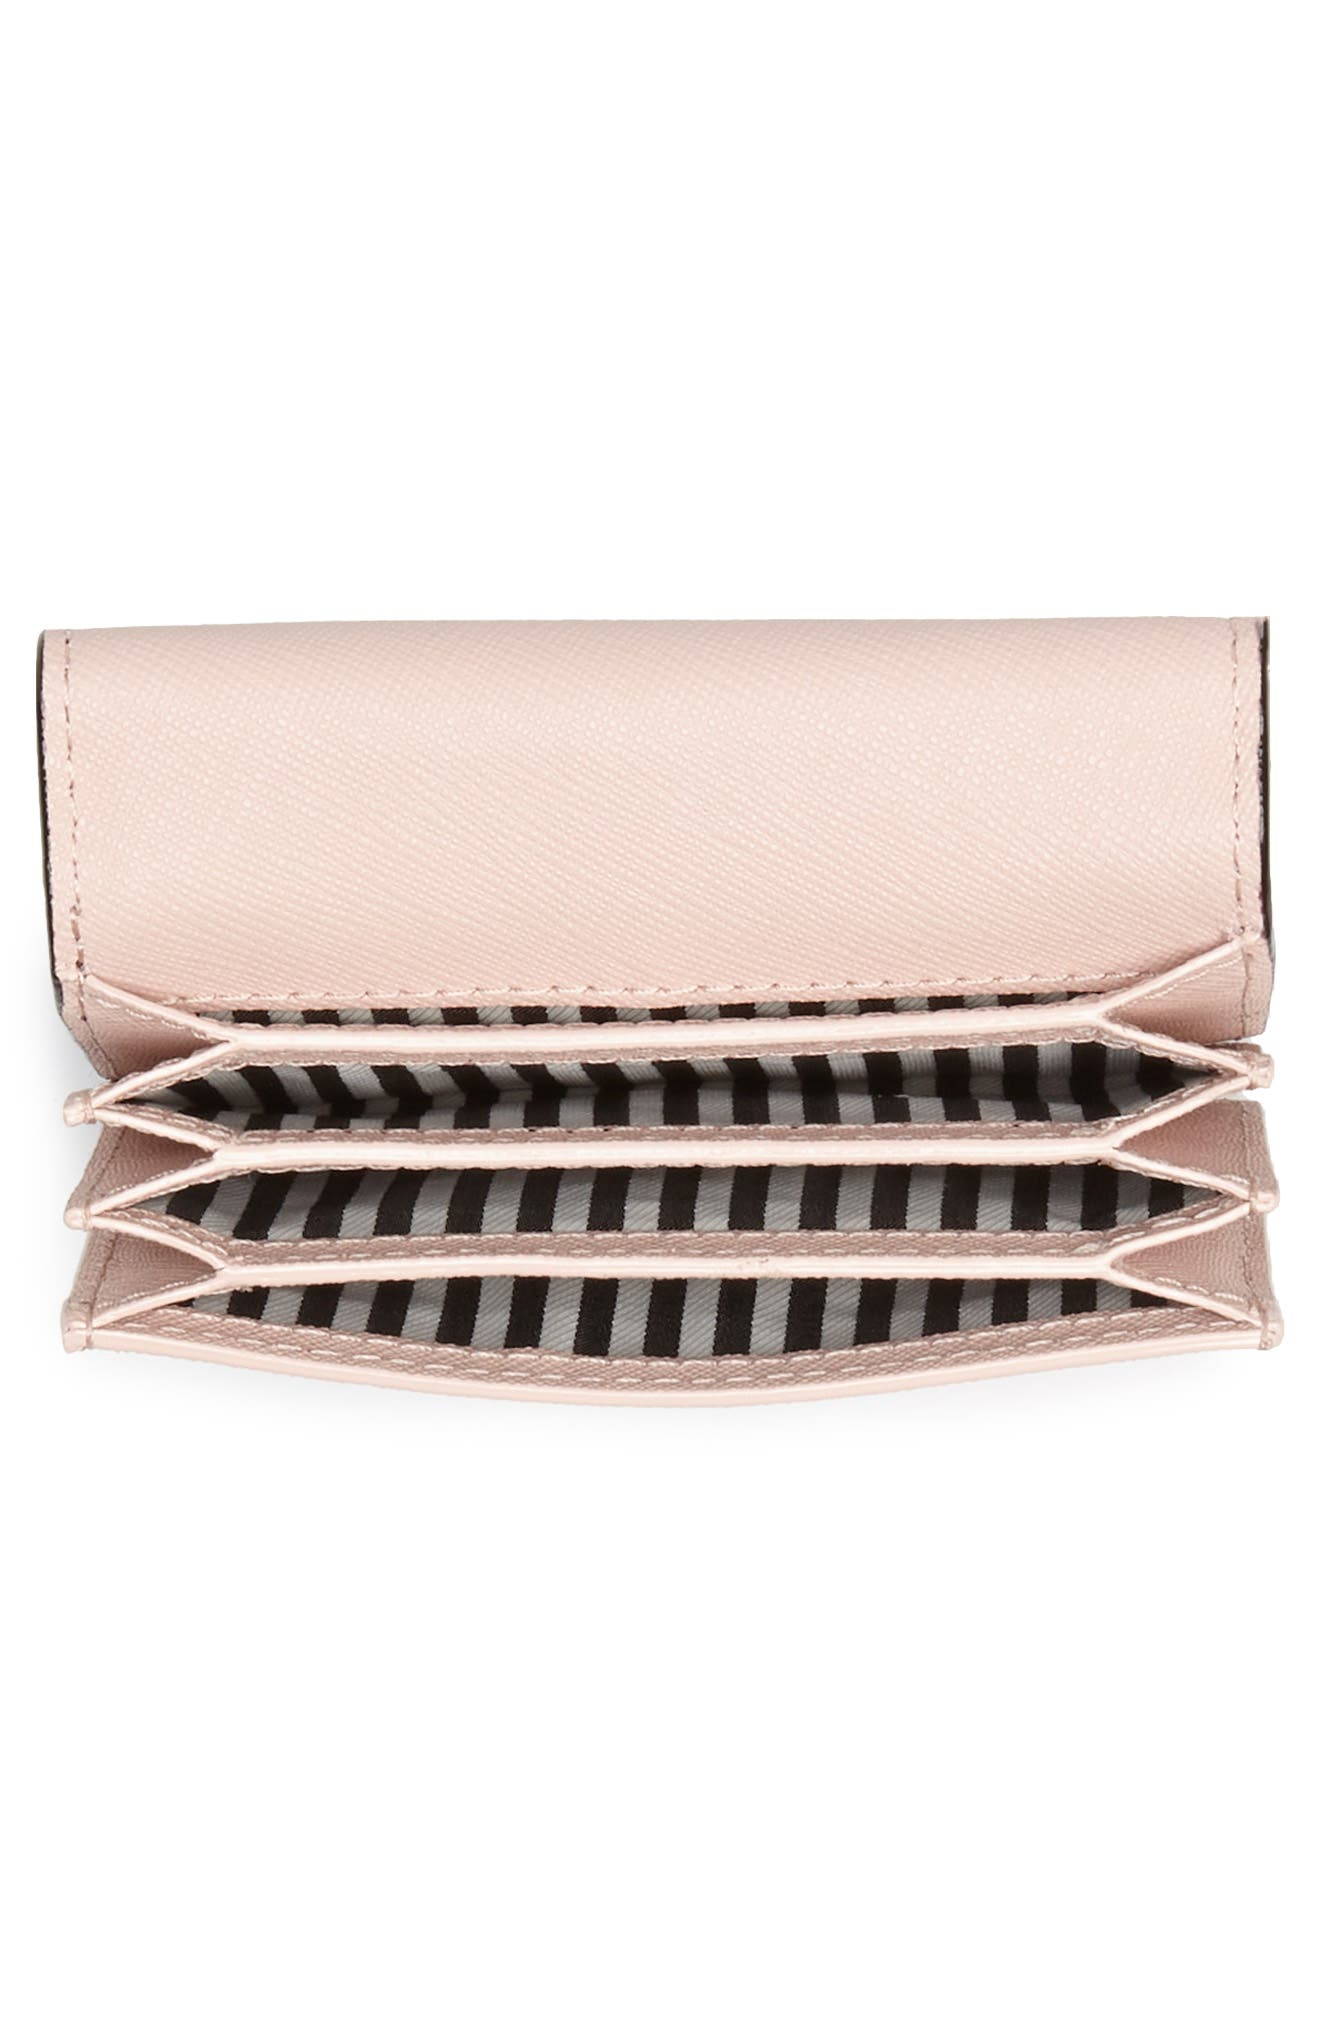 cameron street - annabella accordioned card case,                             Alternate thumbnail 2, color,                             Black/ Warm Vellum